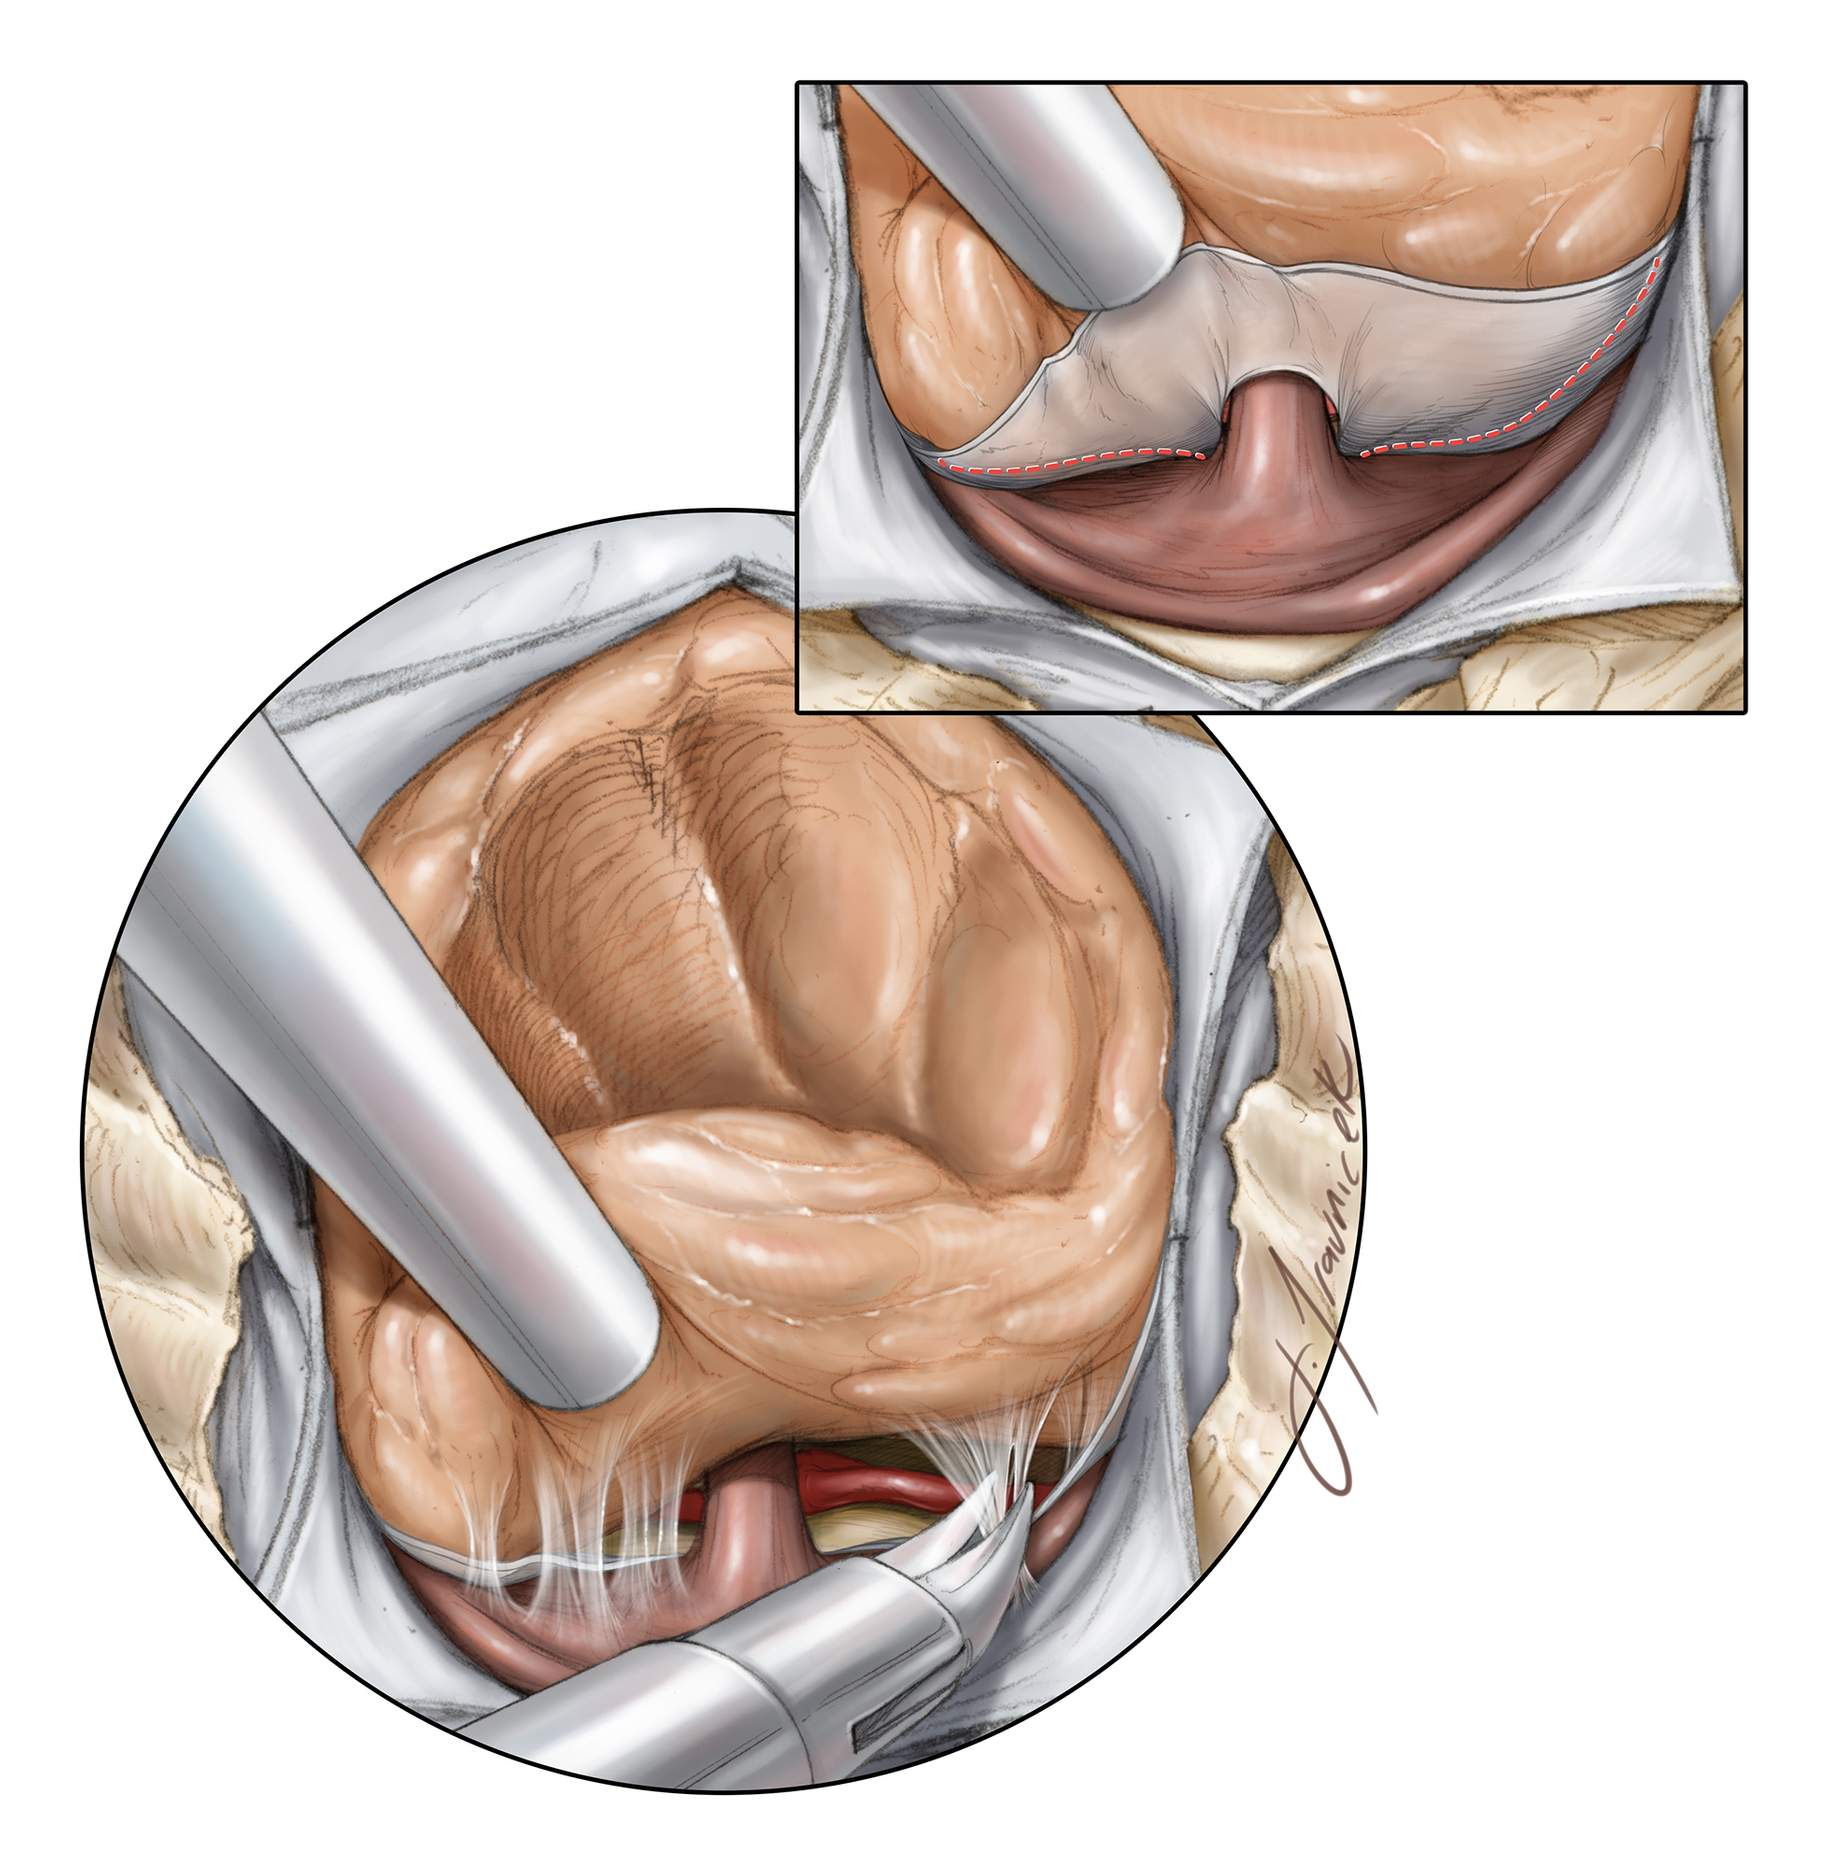 Figure 8: The inferior pole of the tumor often involves, or is based on, the dura of the diaphragm itself. The diaphragm is resected sharply where involved, avoiding injury to the pituitary stalk (inset image). Inferior tumor growth into the sellae often overlies a compressed pituitary gland that is usually posteriorly displaced. This margin is sharply dissected, often exposing the interpeduncular cisterns. The superior hypophyseal arteries will be displaced posteroinferiorly by the tumor and must not be injured.